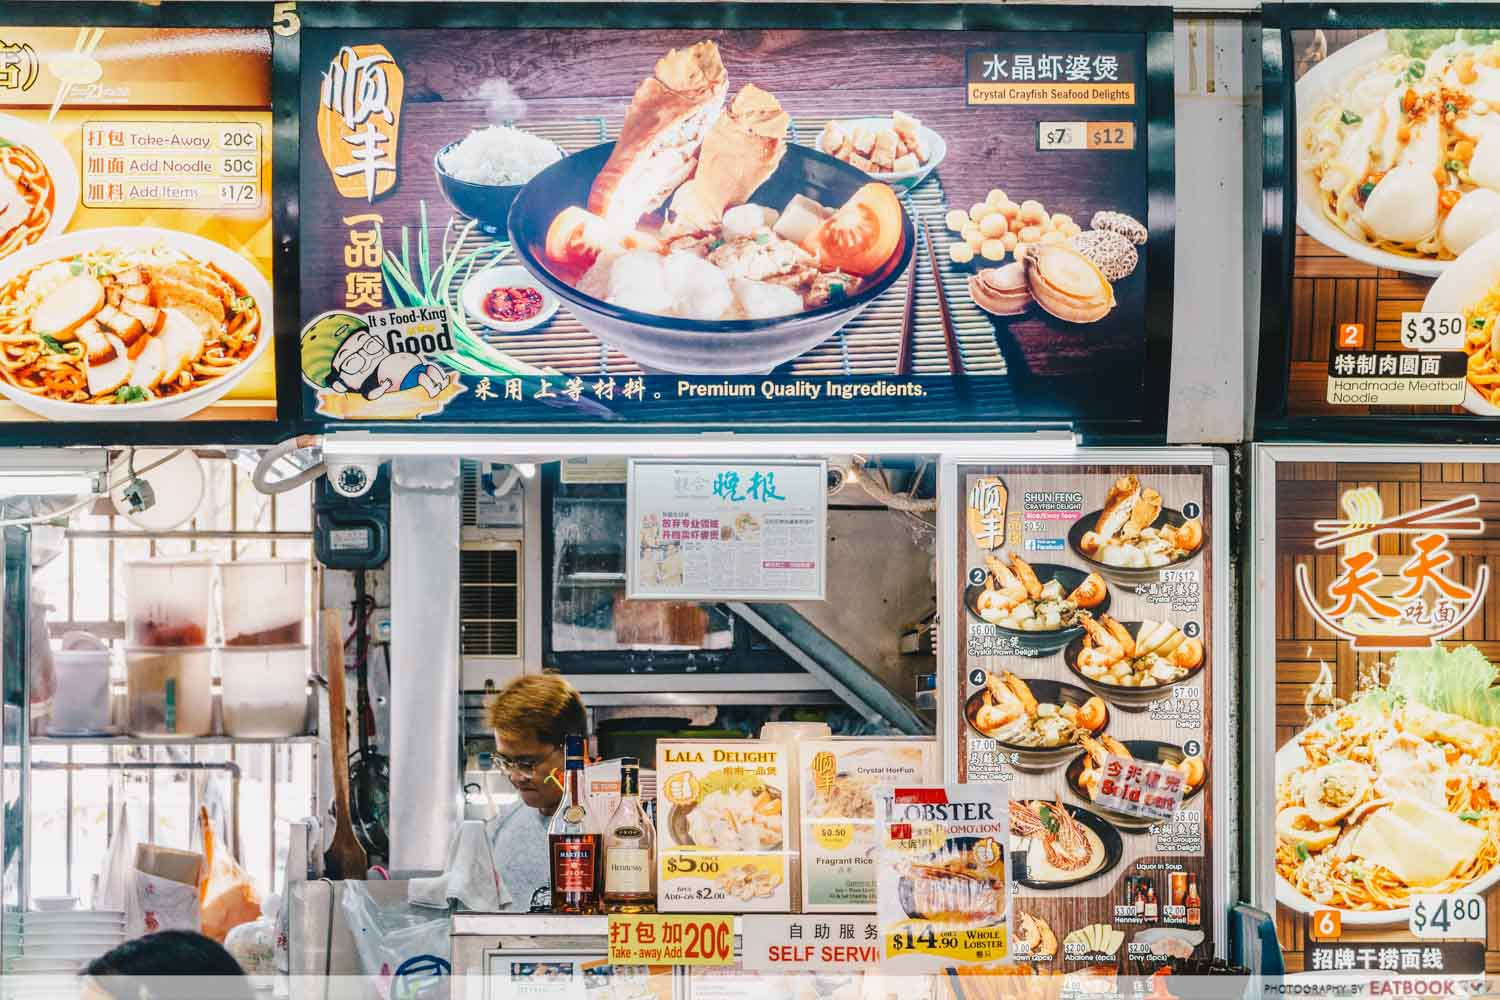 Shun Feng Crayfish Delight - Storefront